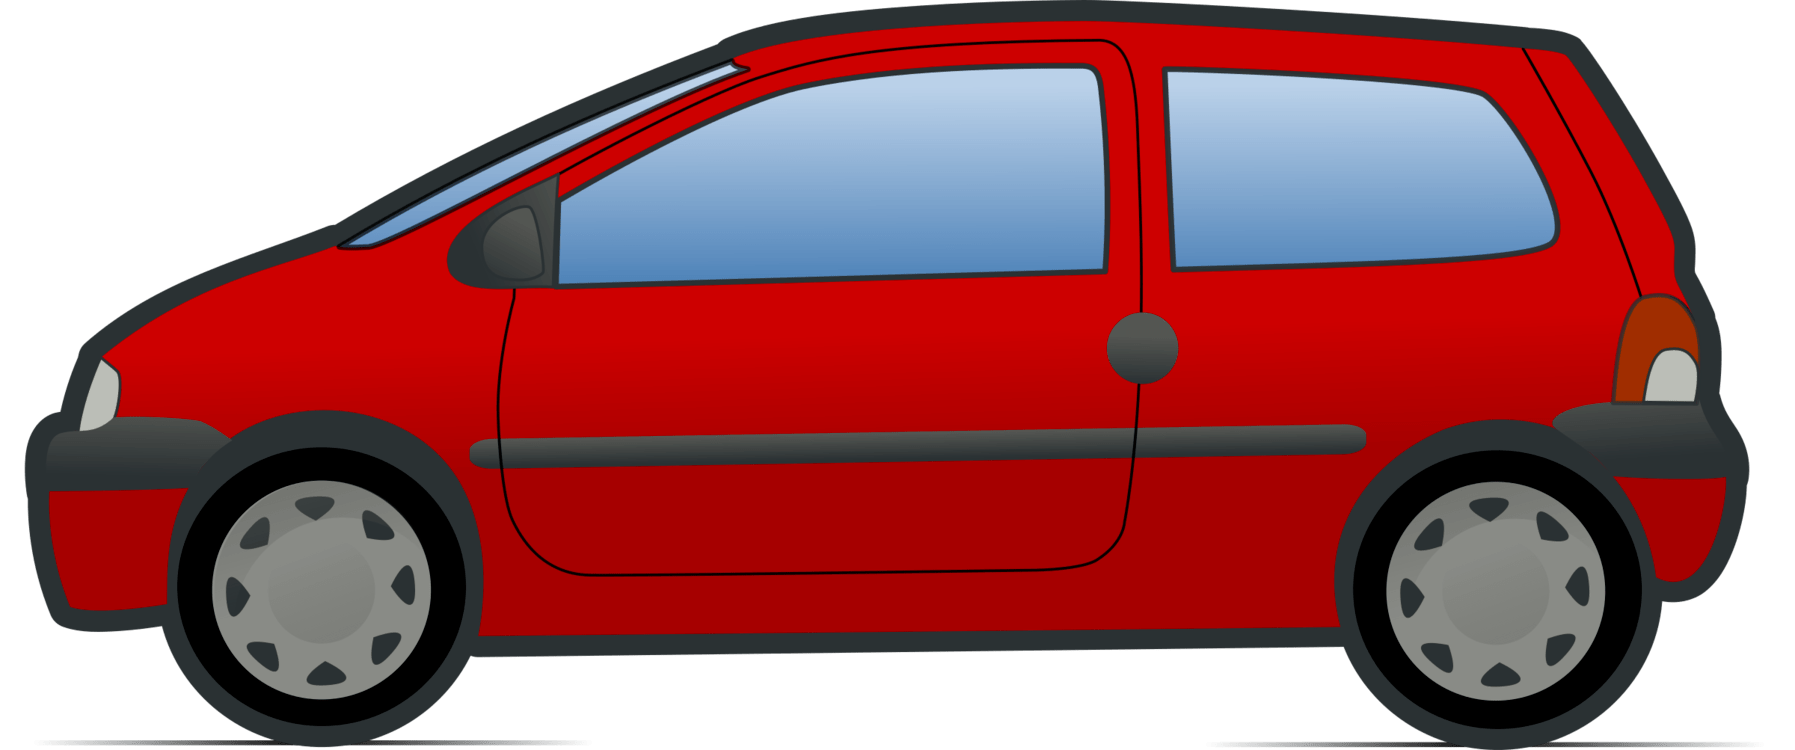 Minivan clipart free graphic download Free minivan clipart 6 » Clipart Portal graphic download